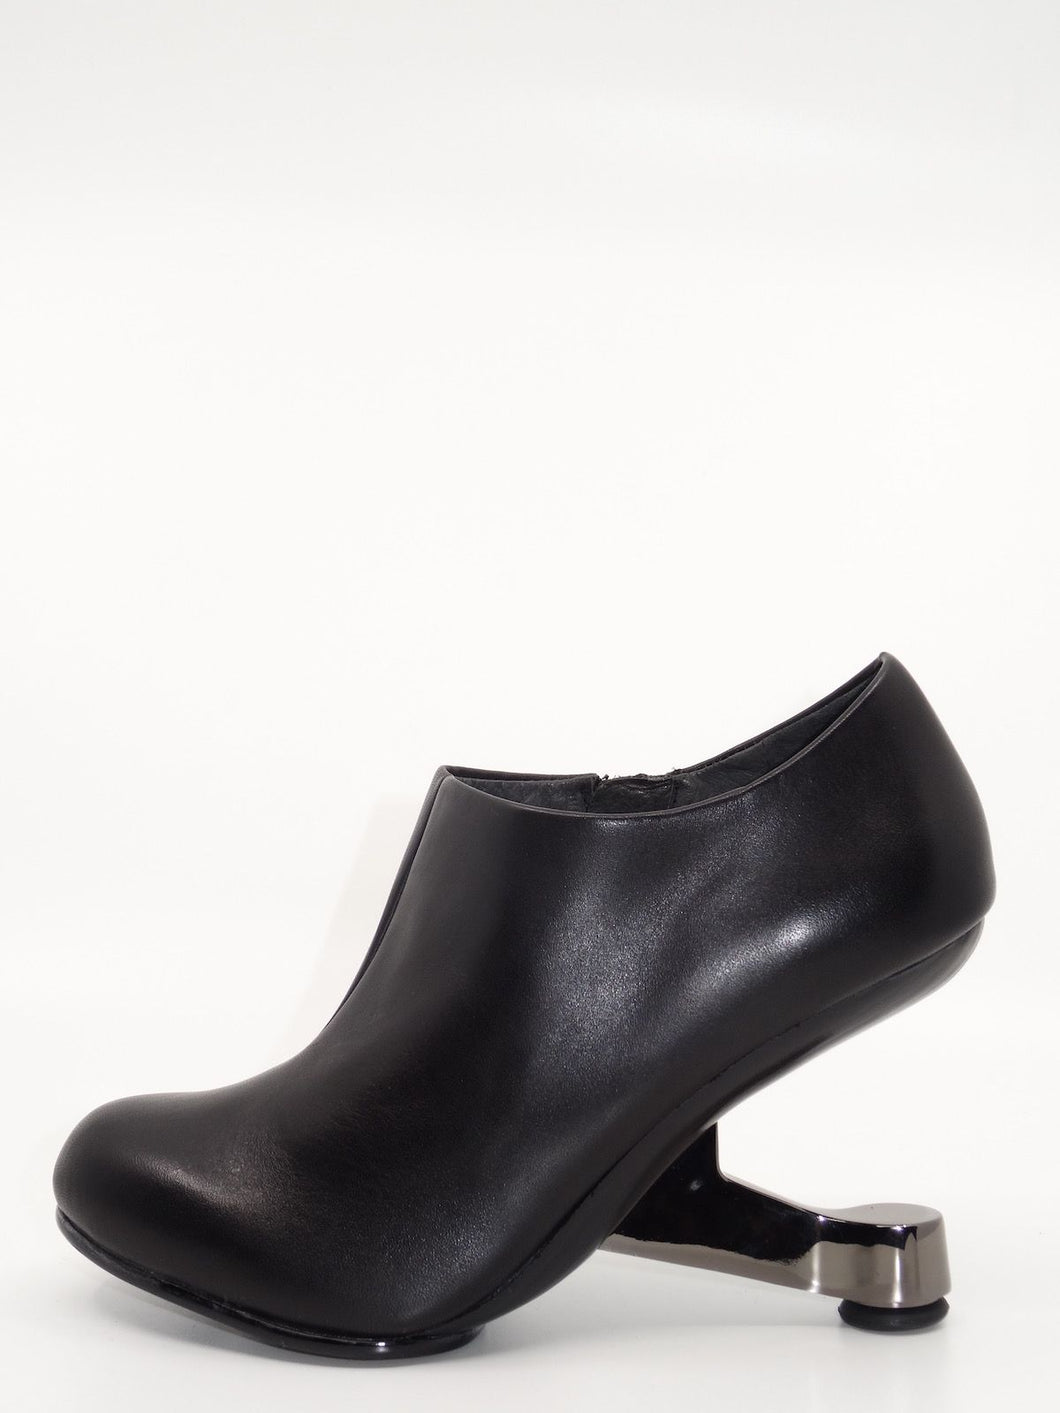 United Nude Eamz Bootie Black Leather